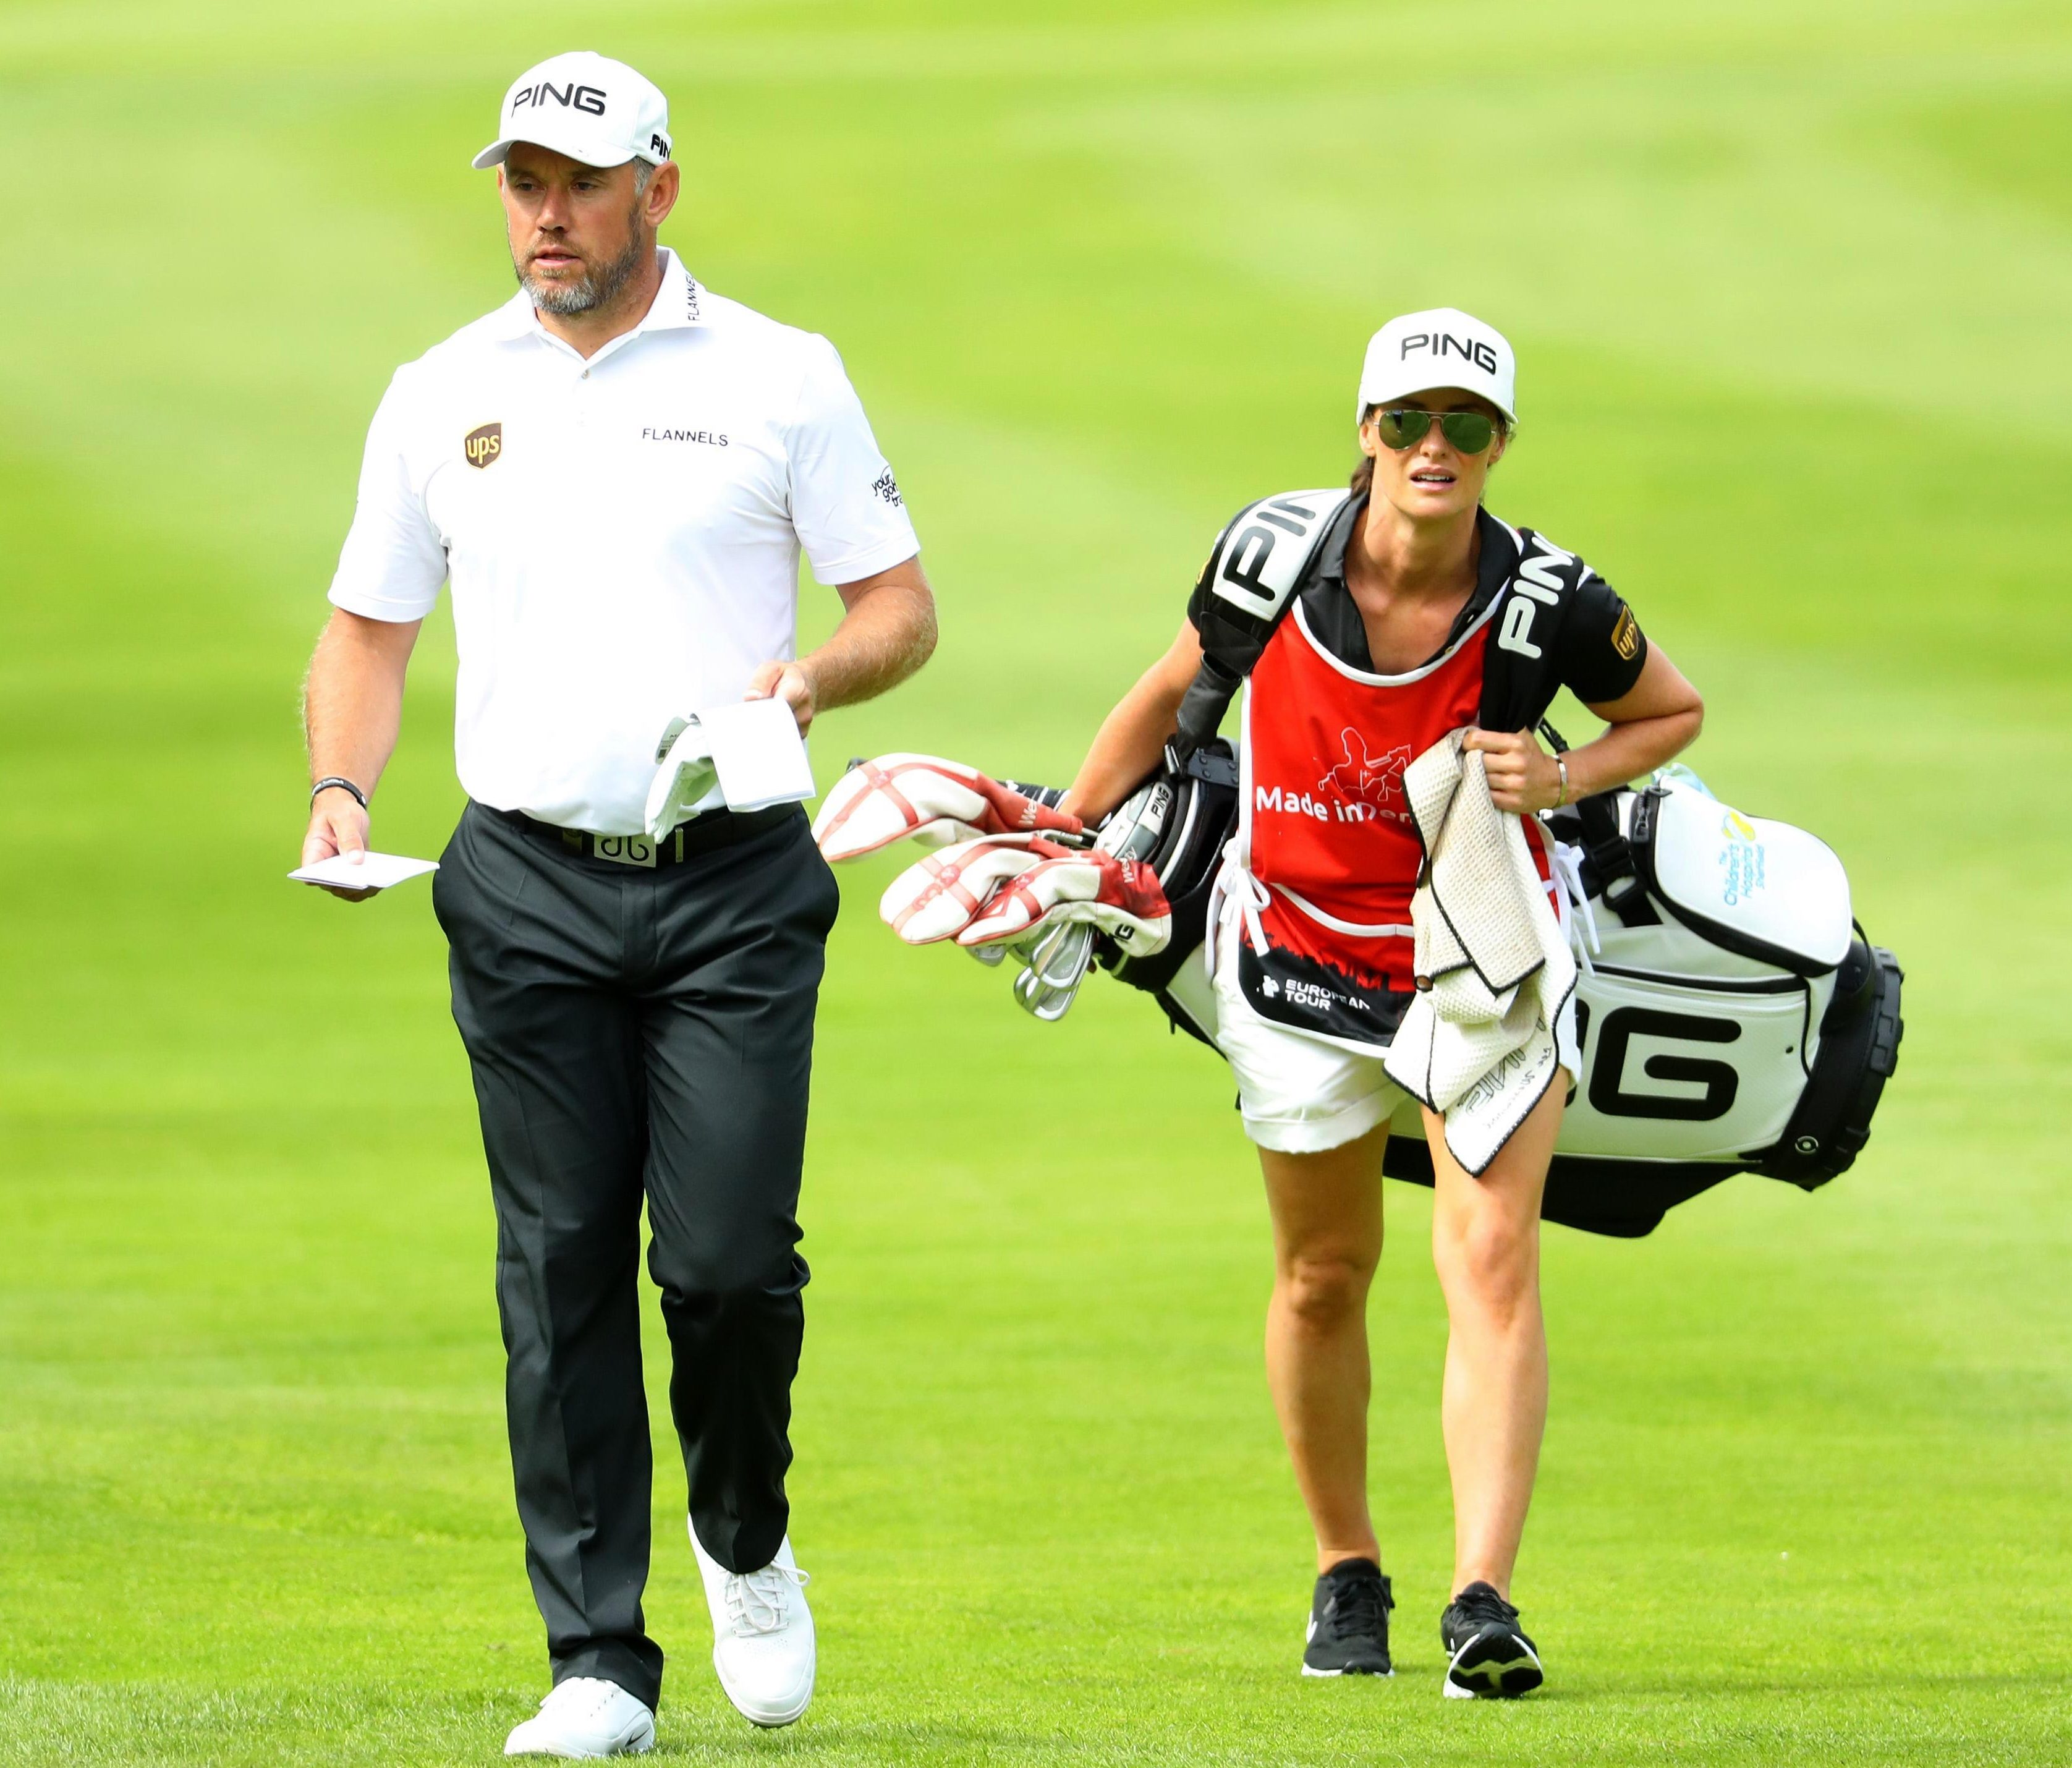 It's not the first time that Helen has caddied for her boyfriend